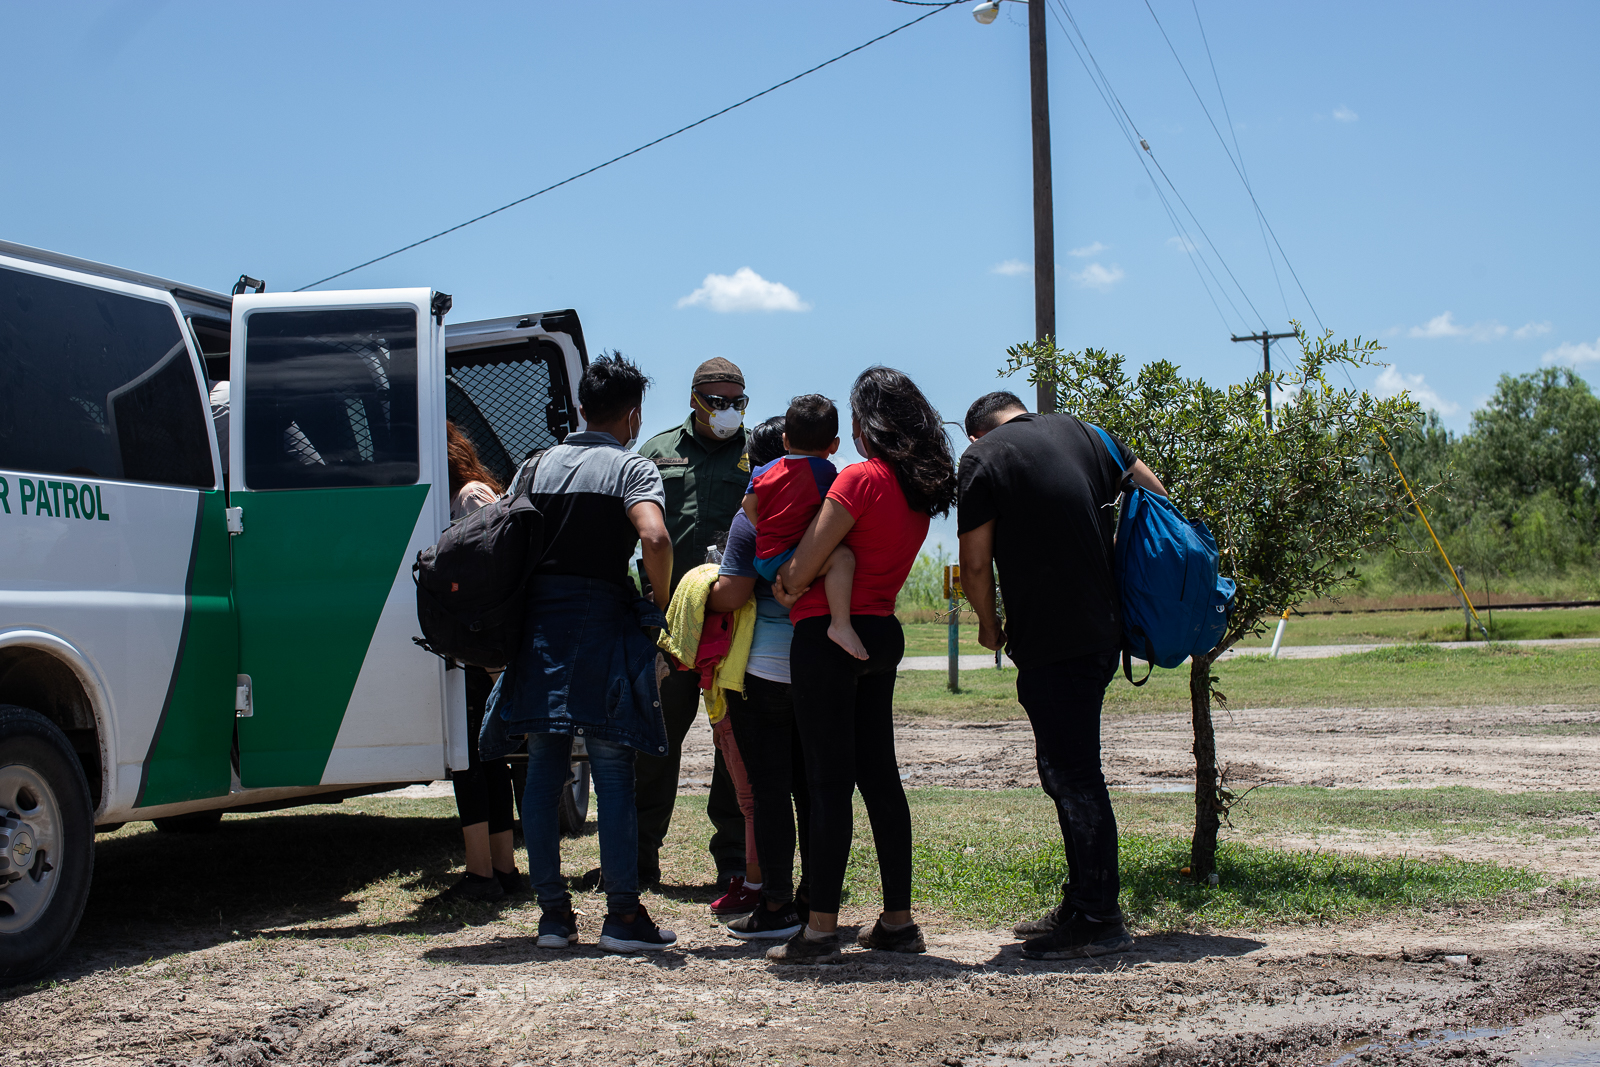 Migrants make their way to a Border Patrol transport vehicle after illegally entering the U.S. near La Joya, Texas, on August 7, 2021. (Kaylee Greenlee - Daily Caller News Foundation)